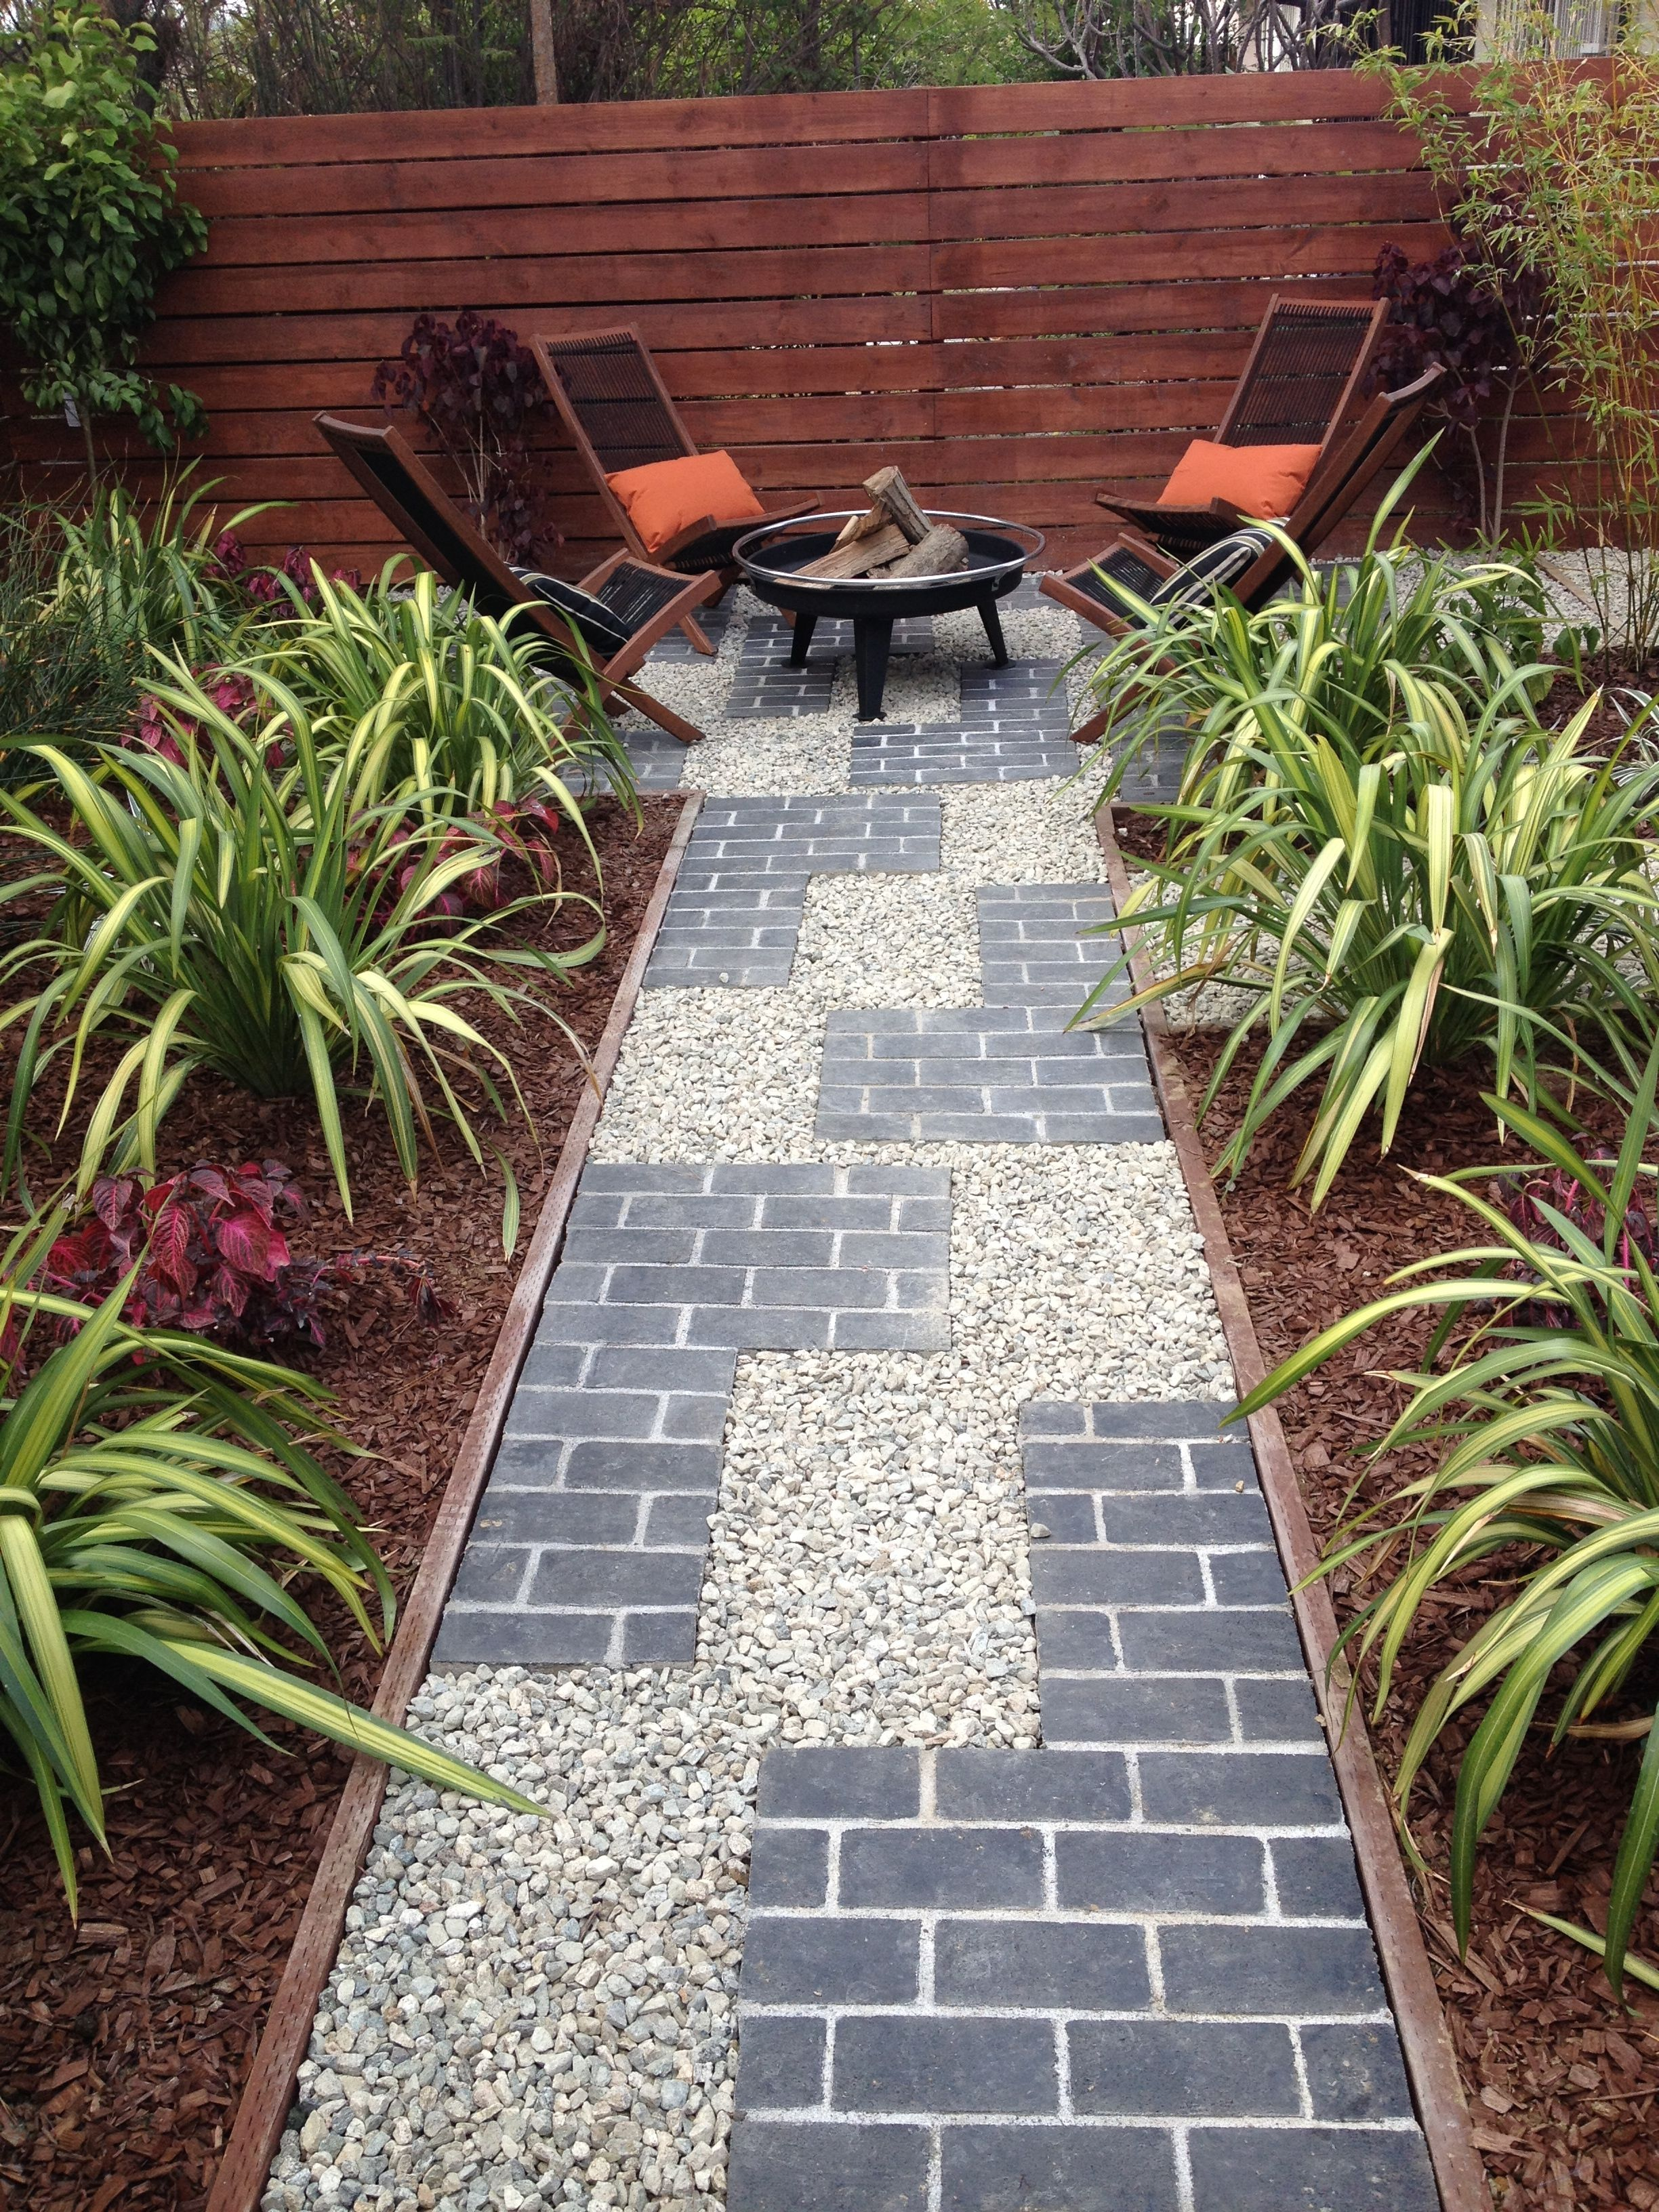 Tetris inspired pathway with grey brick and gravel, pressure ...